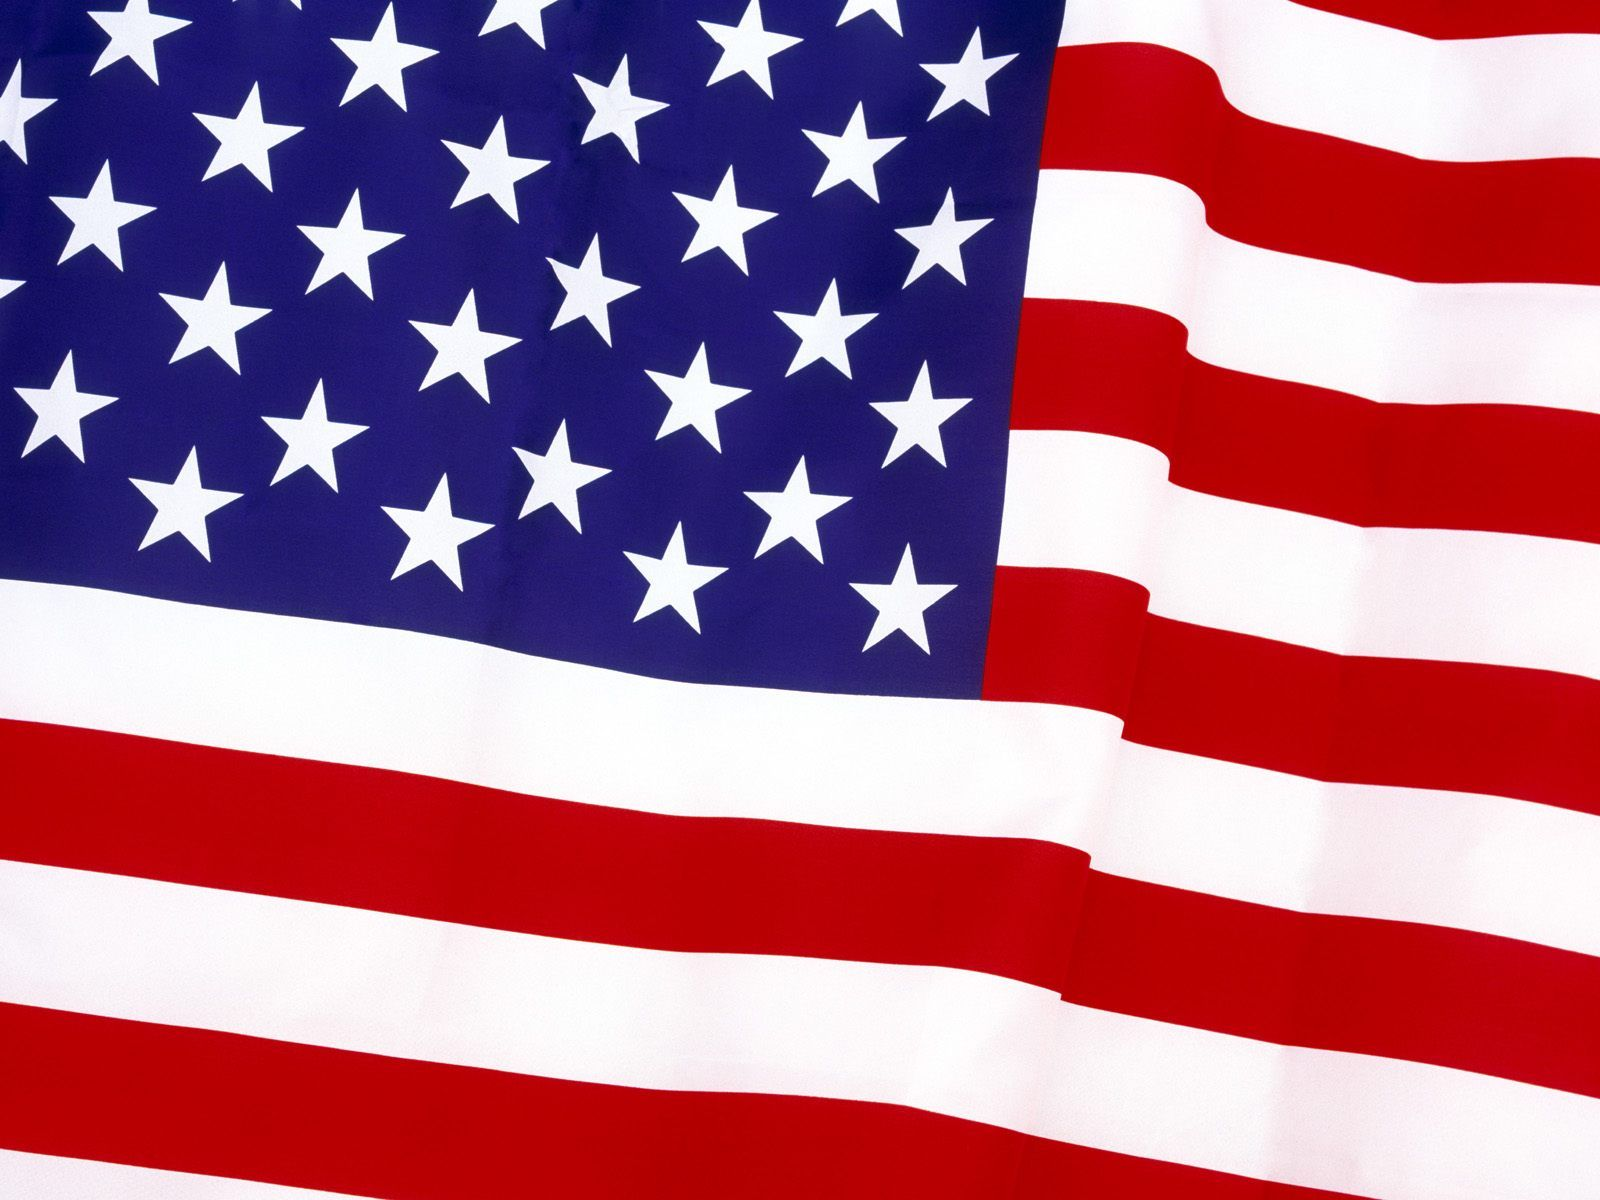 United States Of America United States Of America Flag Wallpapers Hd Wallpapers With Images America Flag Wallpaper American Flag Background United States